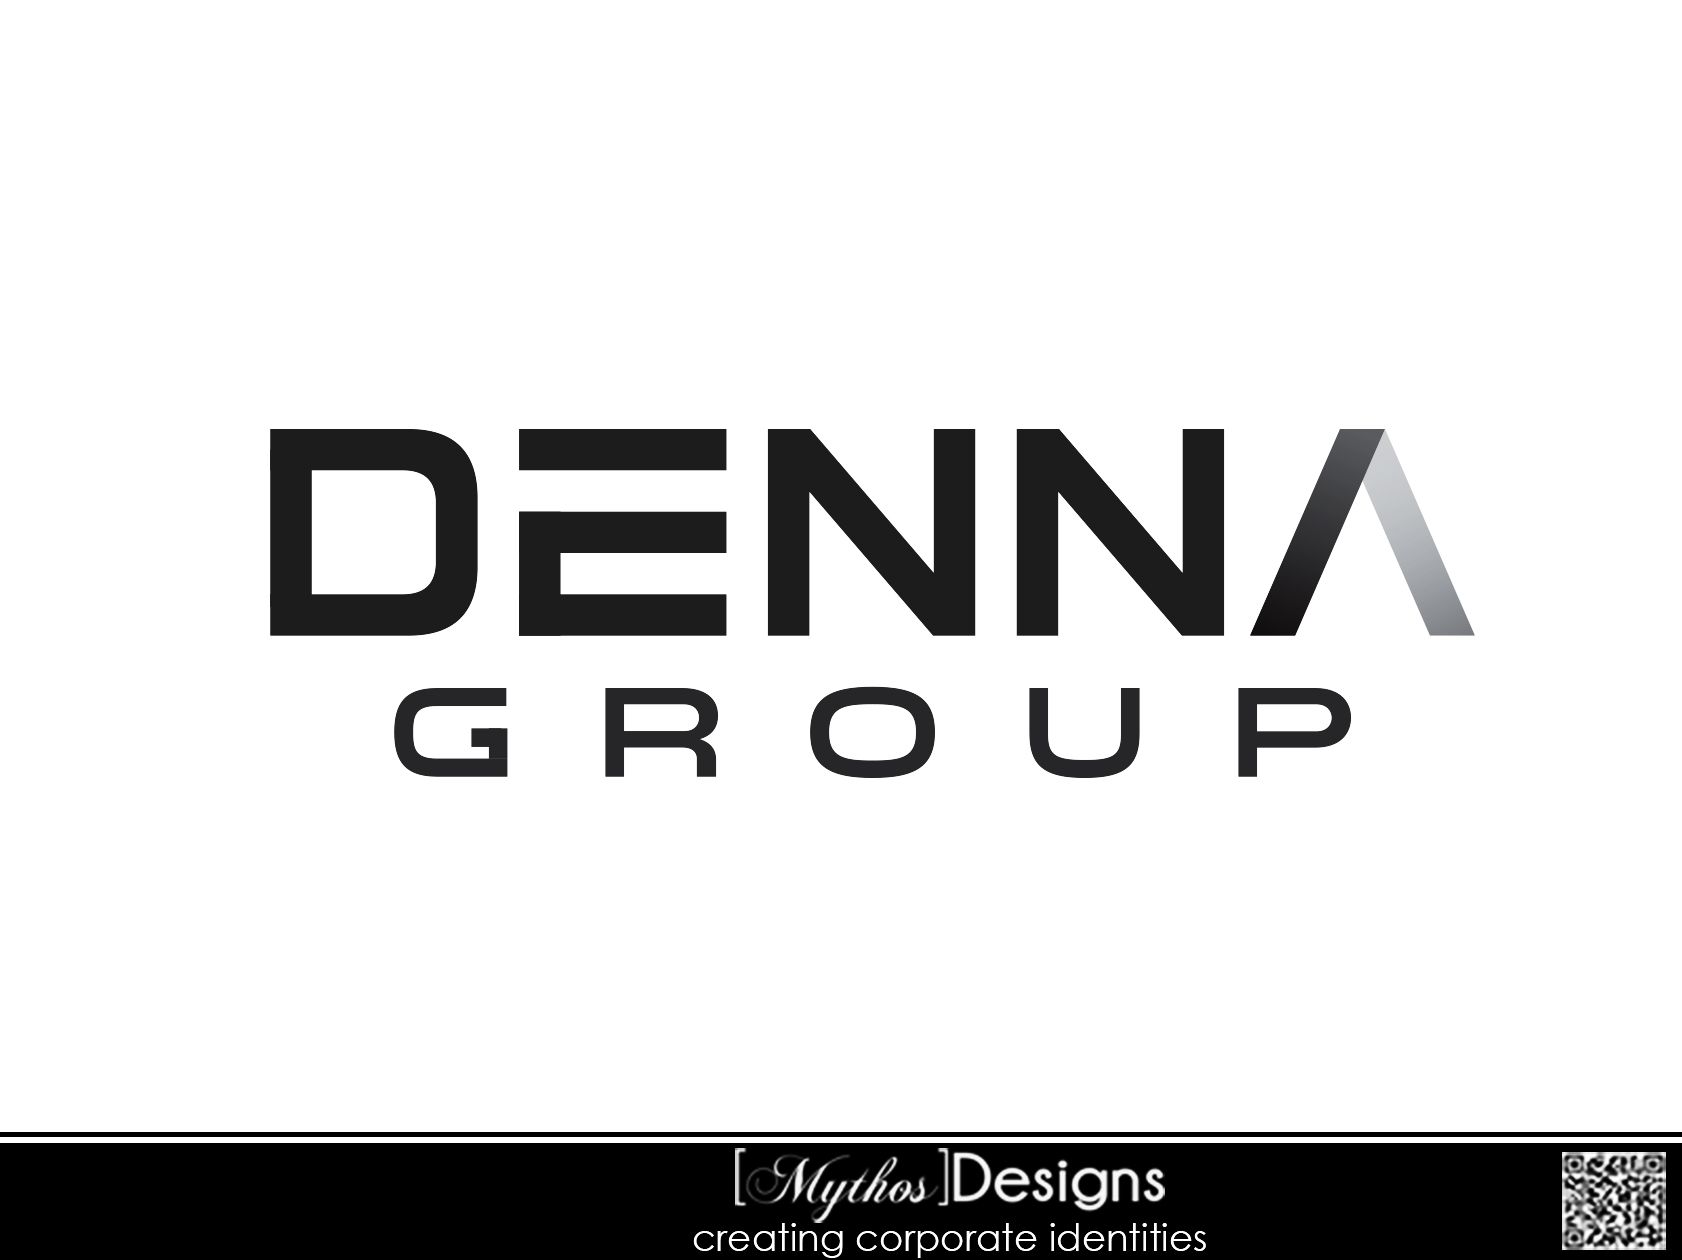 Logo Design by Mythos Designs - Entry No. 154 in the Logo Design Contest Denna Group Logo Design.